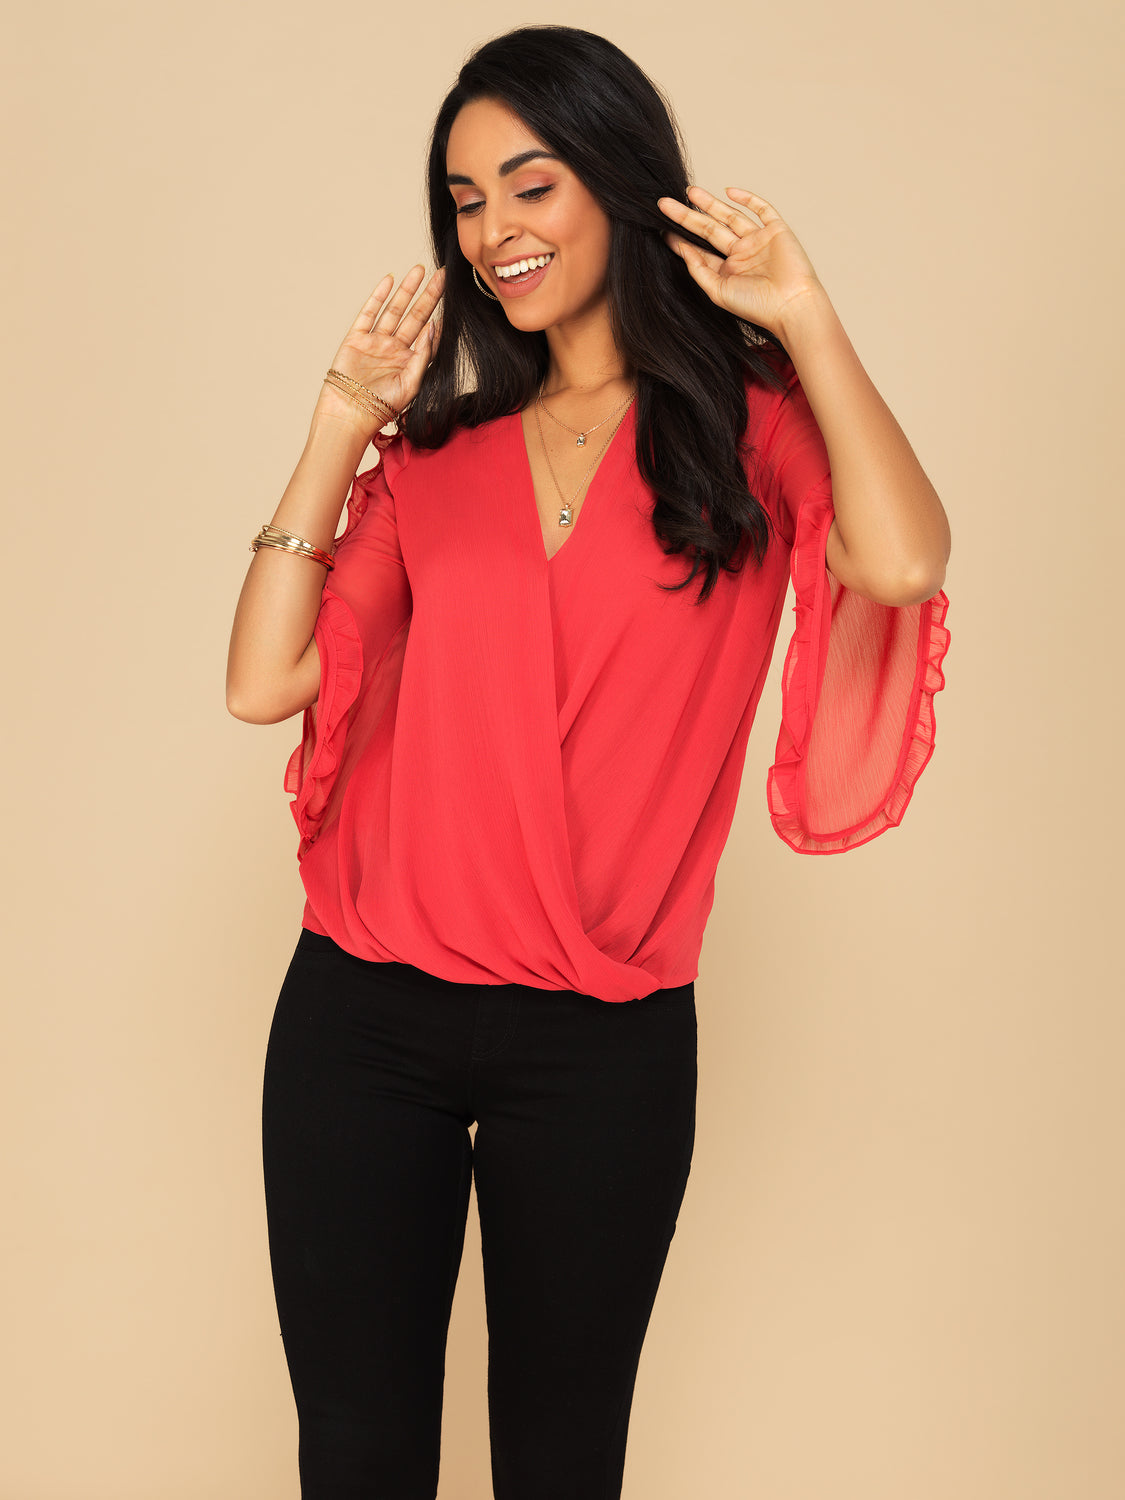 ¾ Ruffled Sleeve Cross Front Blouse